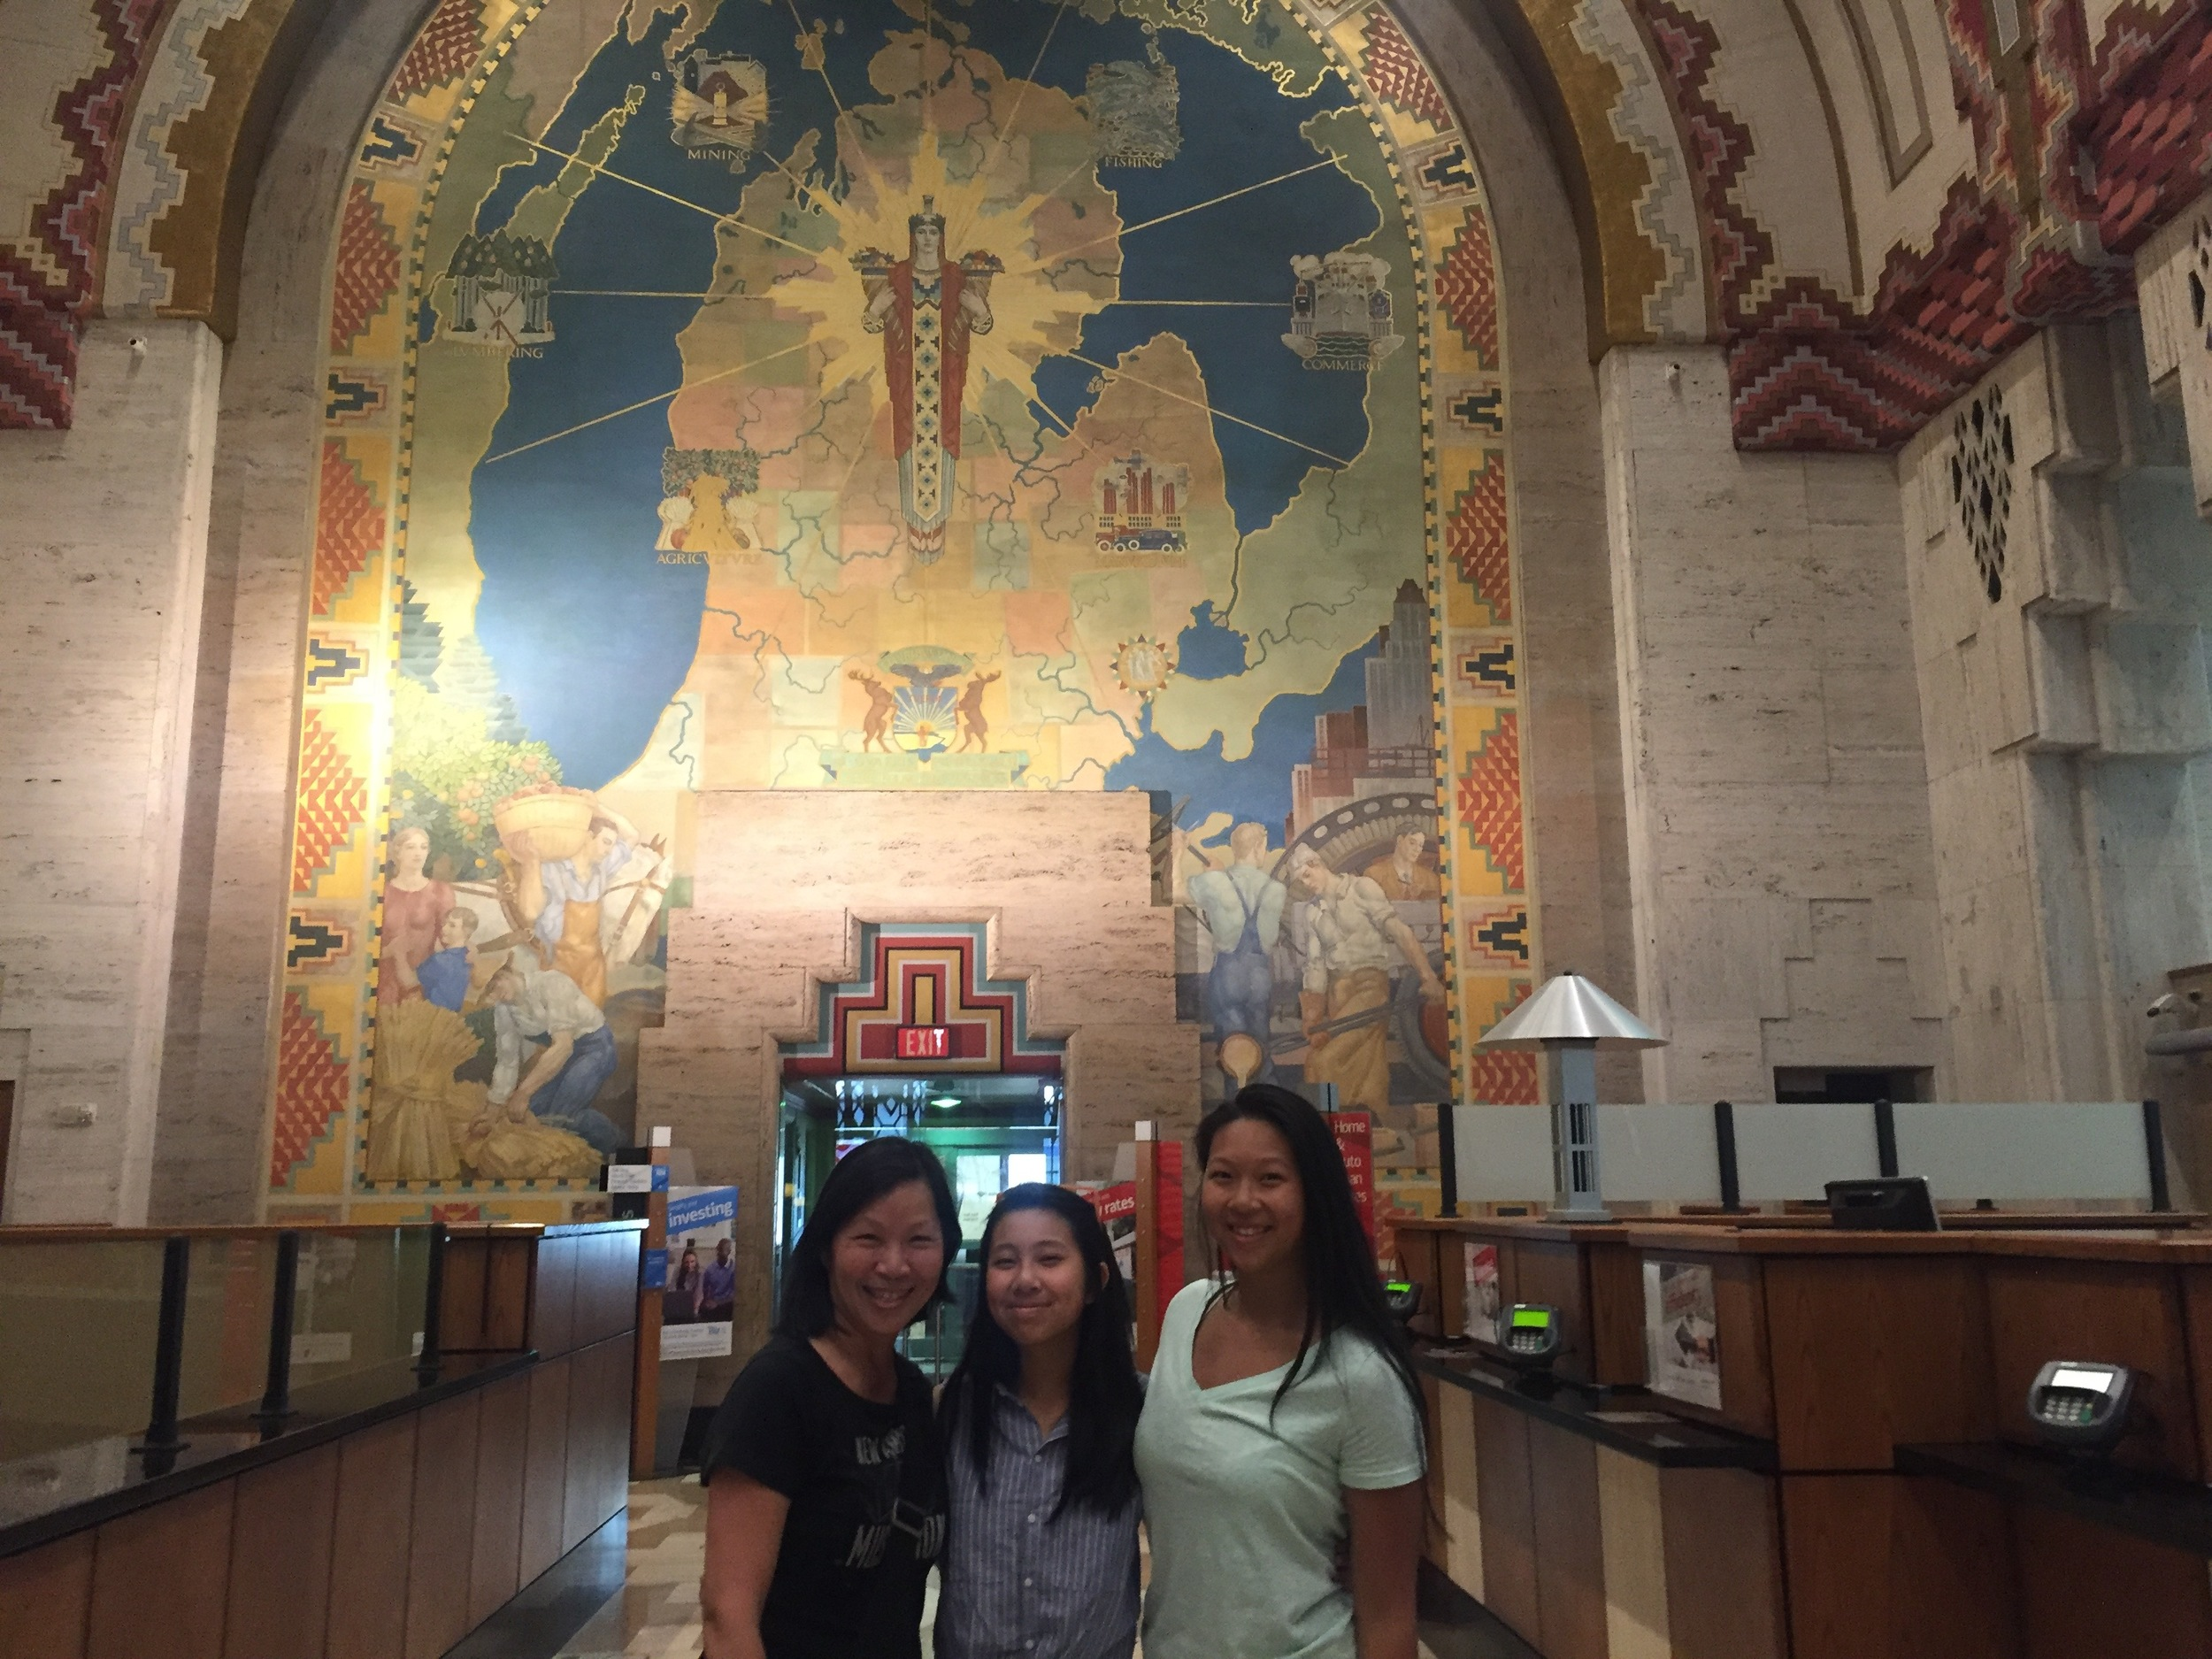 The Huang family joined us and enjoyed the Guardian Building.